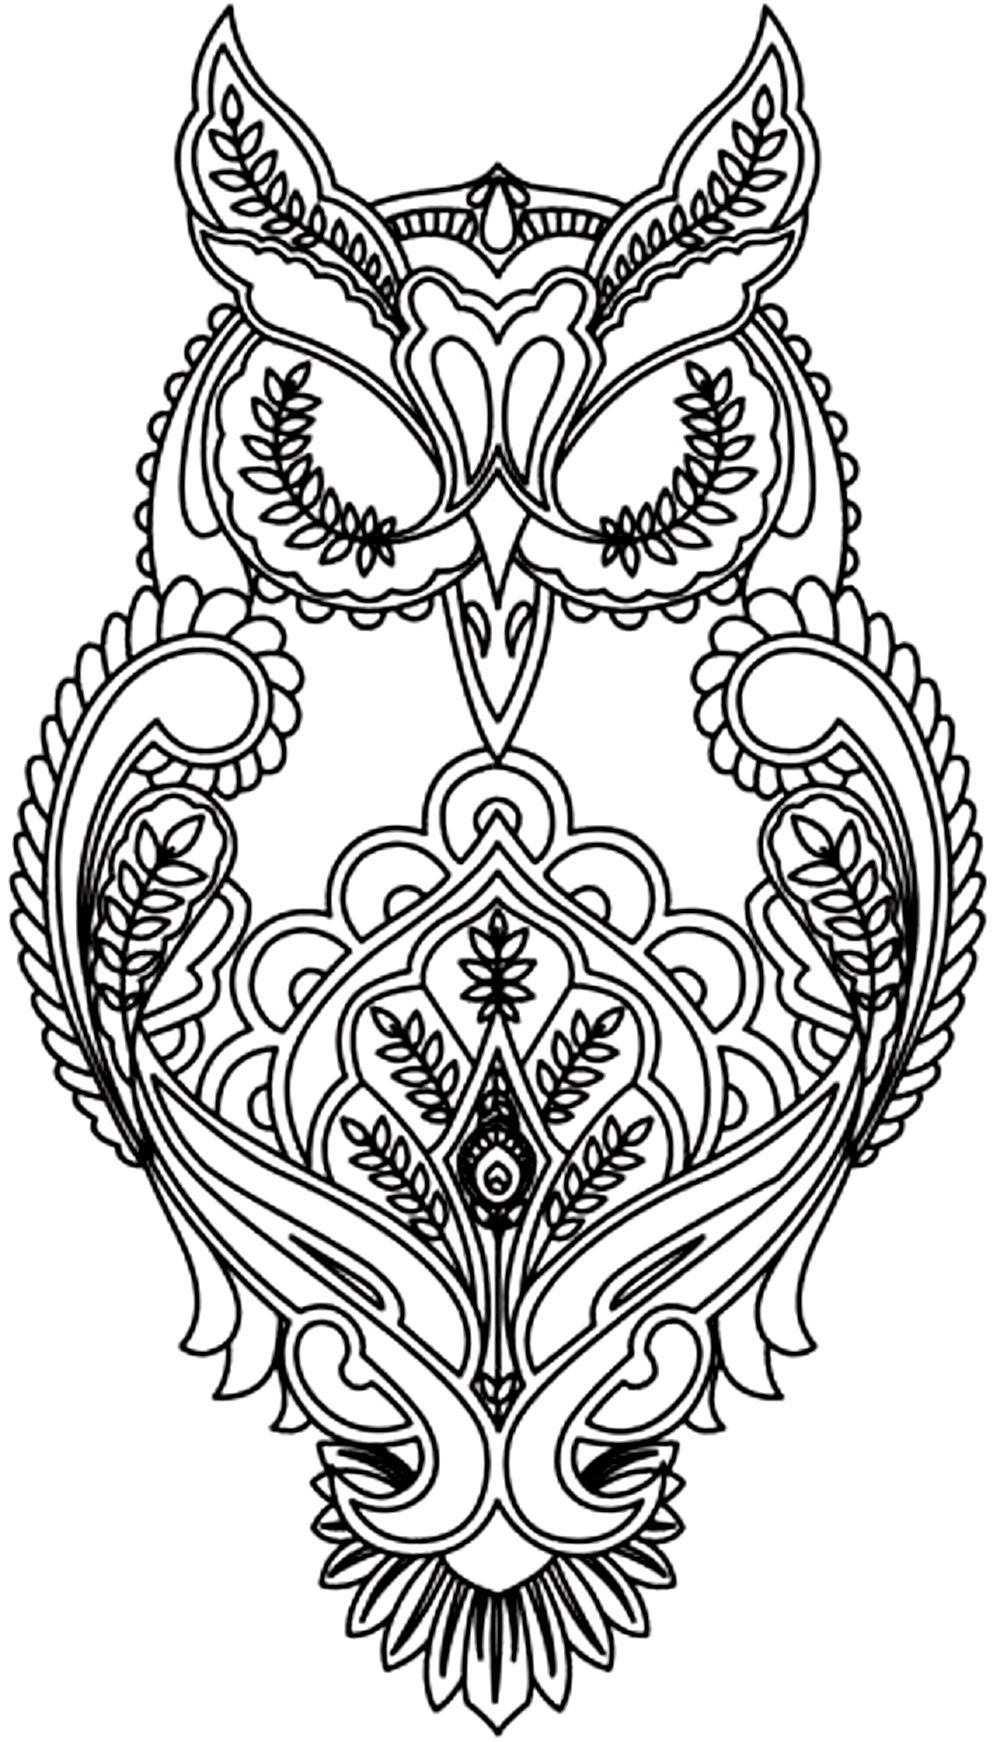 Coloring pictures for adults - 15 Free Adult Coloring Pages Also A Bonus List Of Adult Coloring Books Available On Amazon Coloring Books Pinterest Coloring Coloring Books And